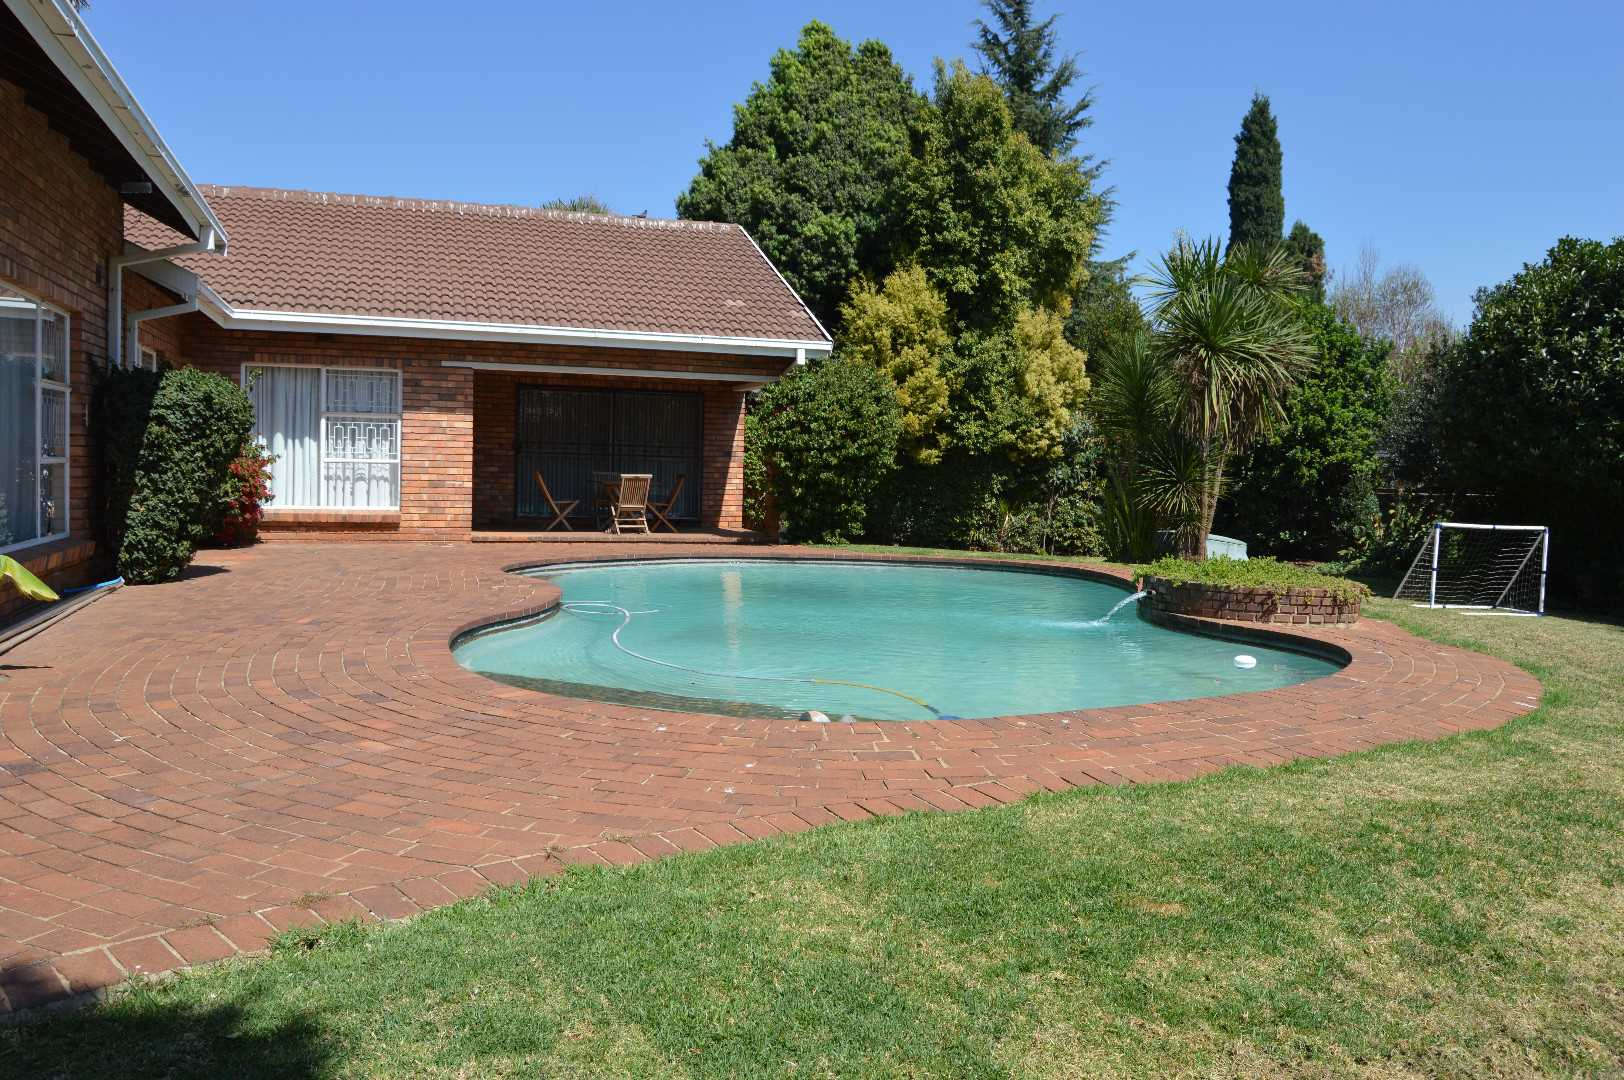 Sparkling pool and lots of space for children and pets to romp and play.